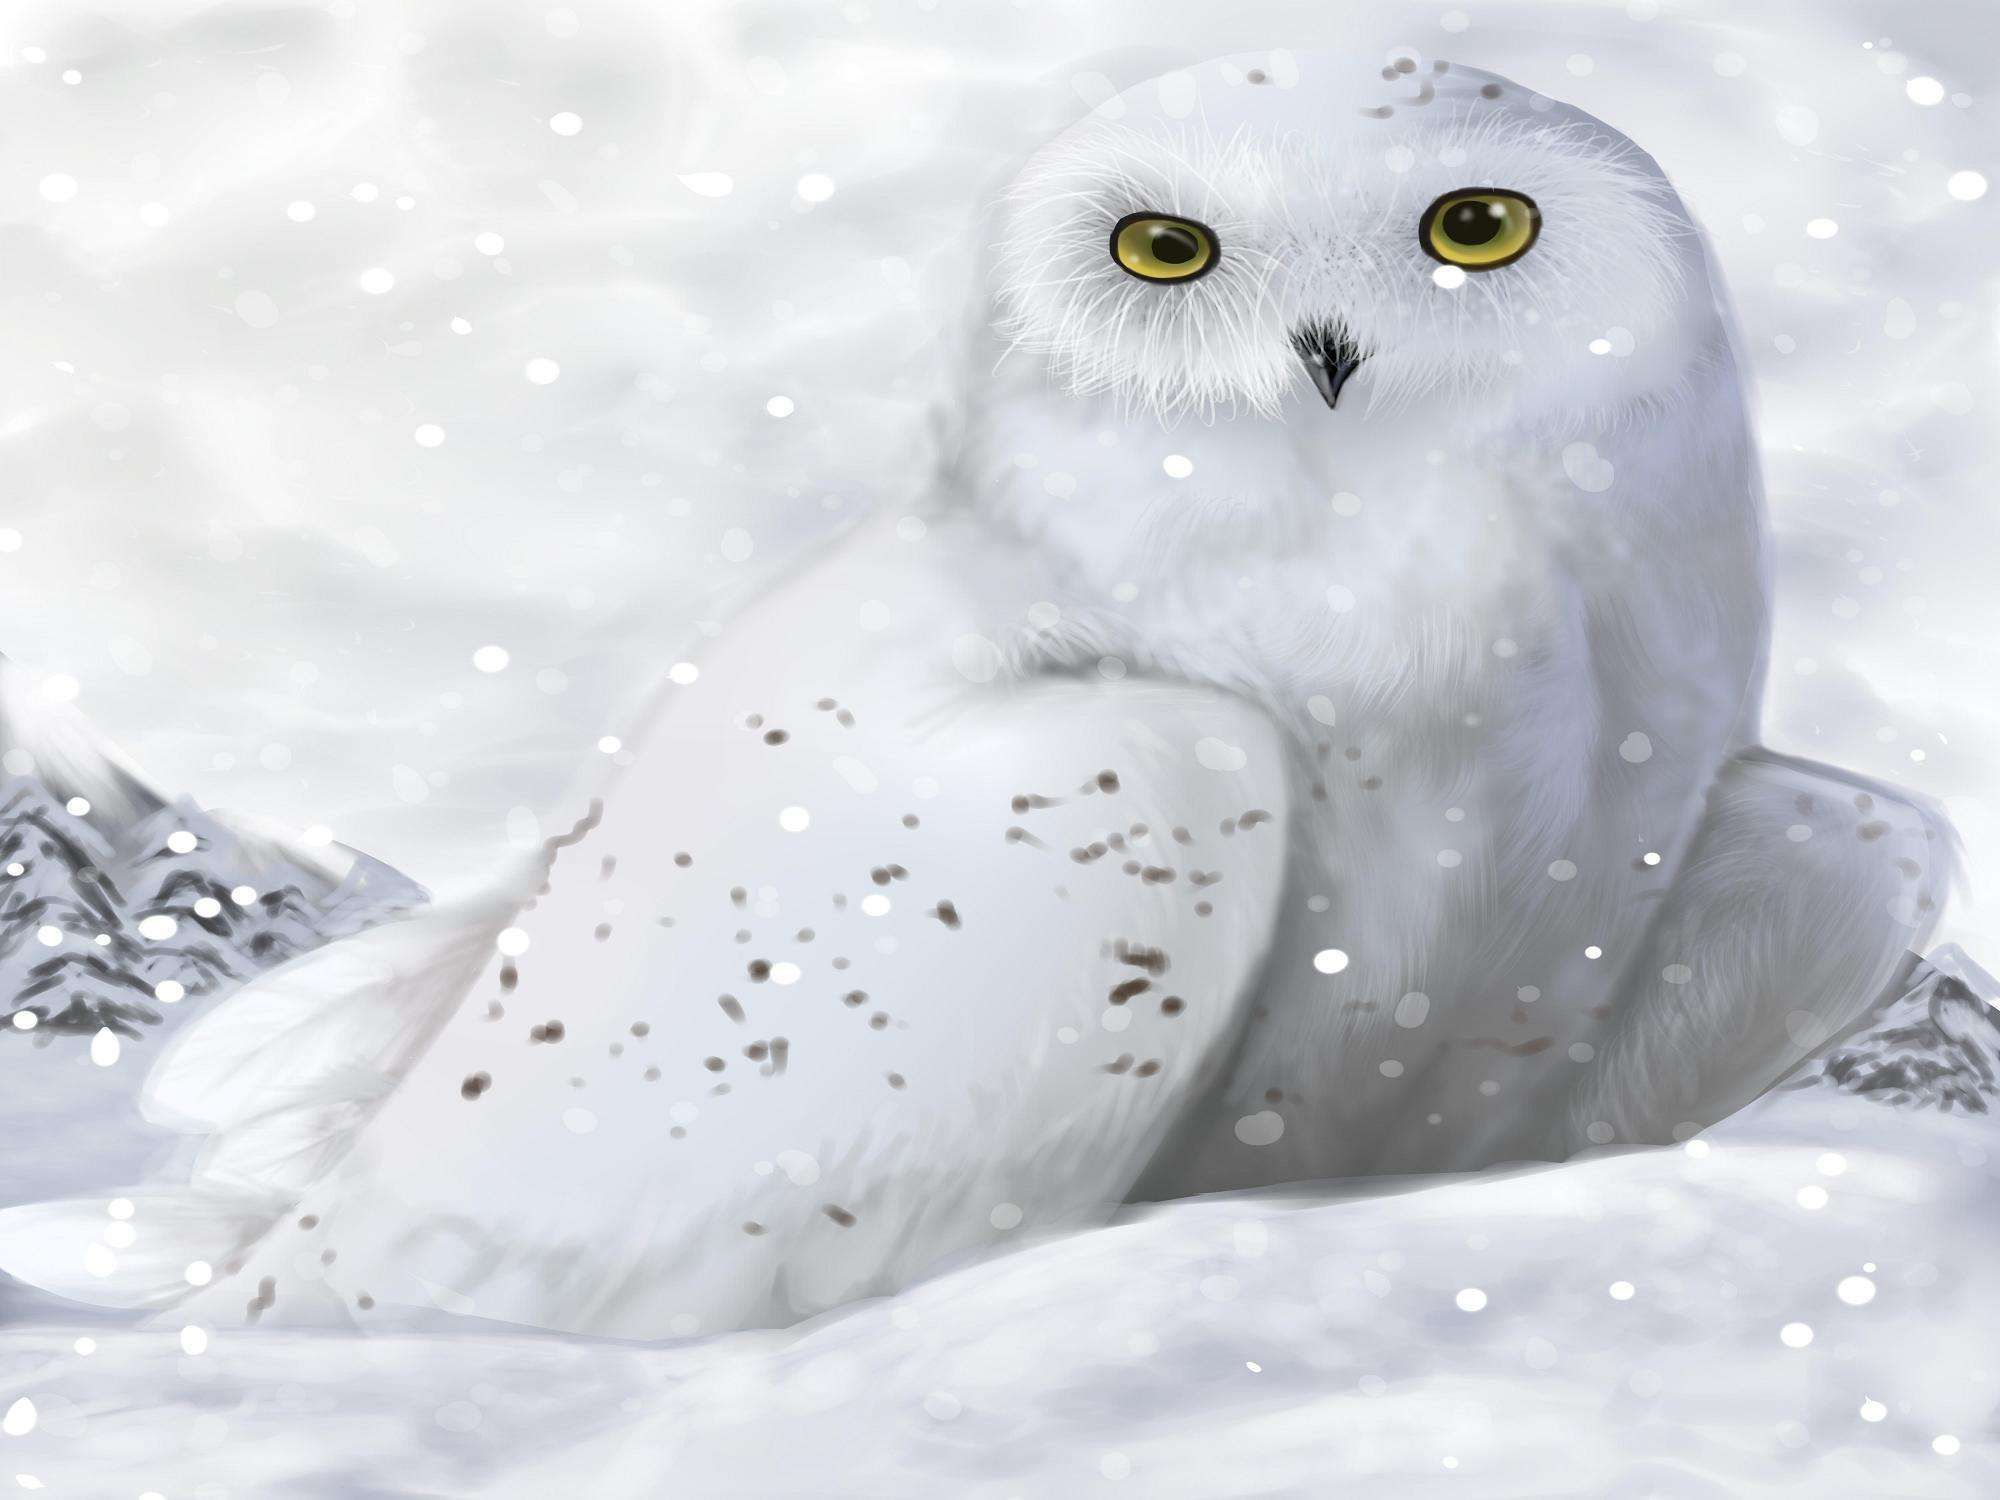 White Winter Owl Wallpapers Hd Wallpapers Hd Winter